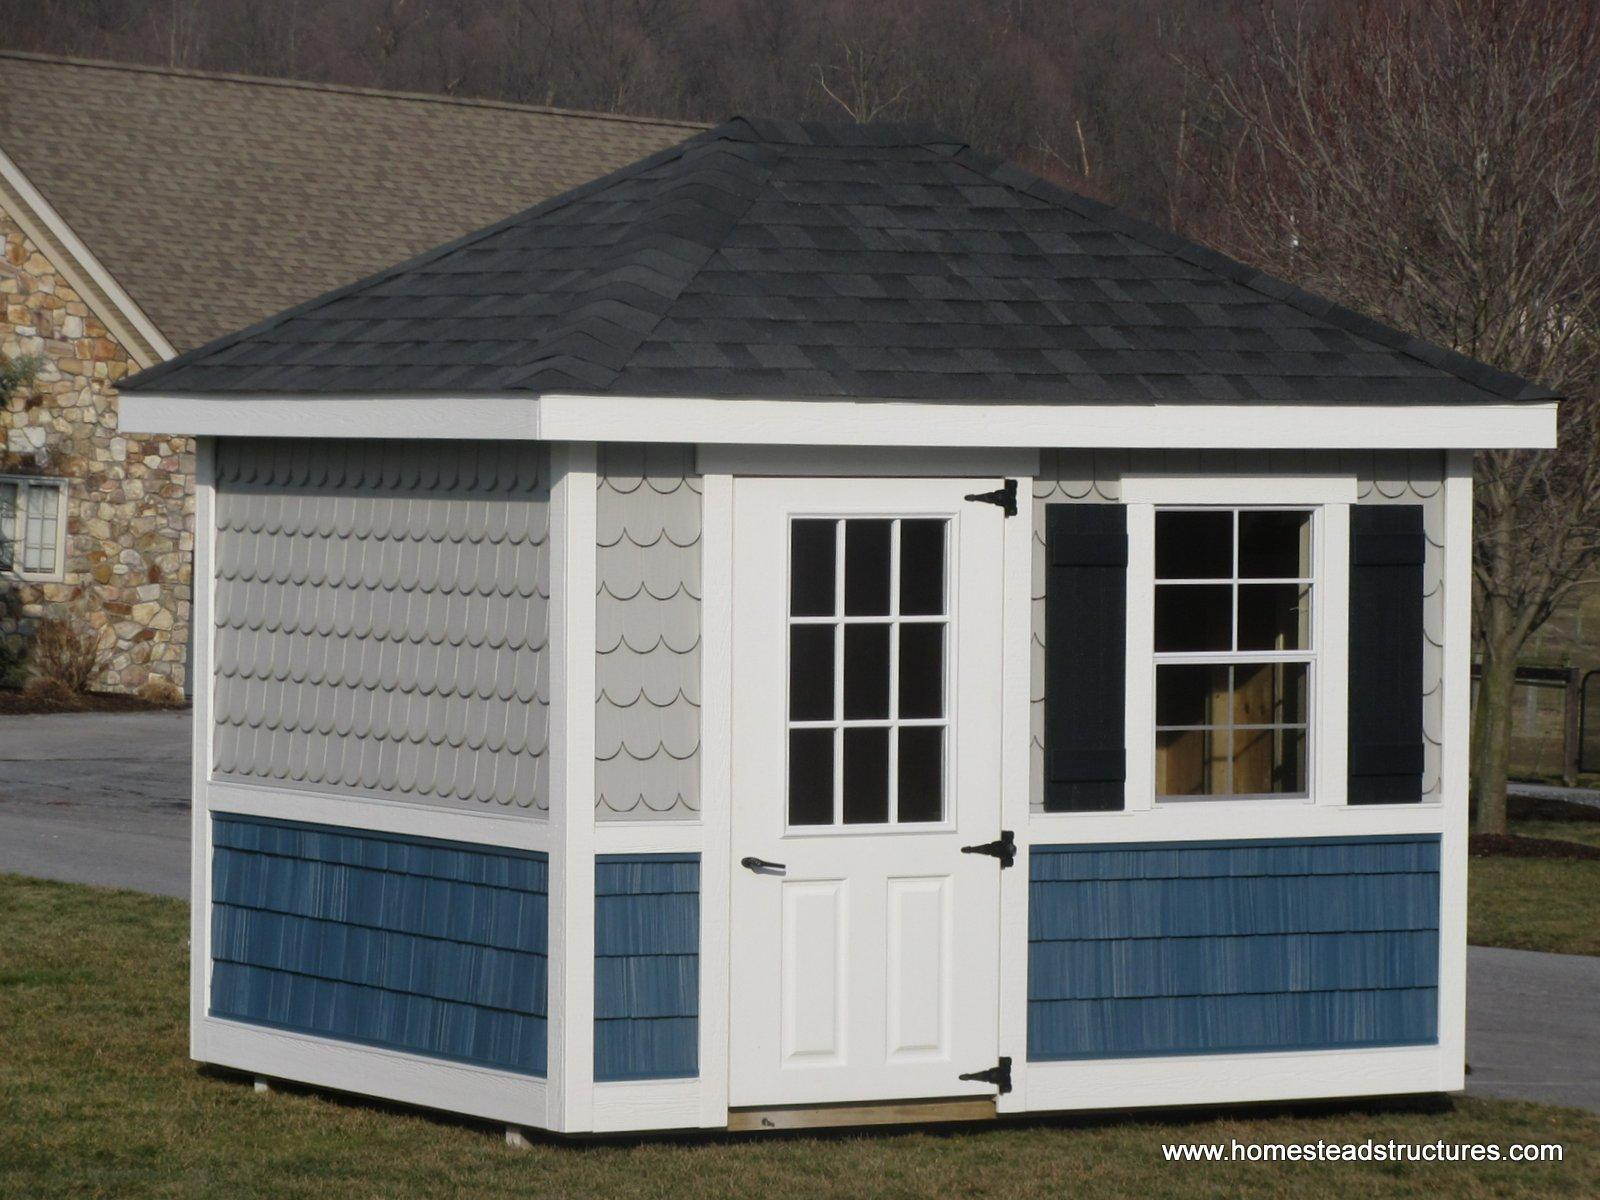 Hip Roof Sheds | Homestead Structures